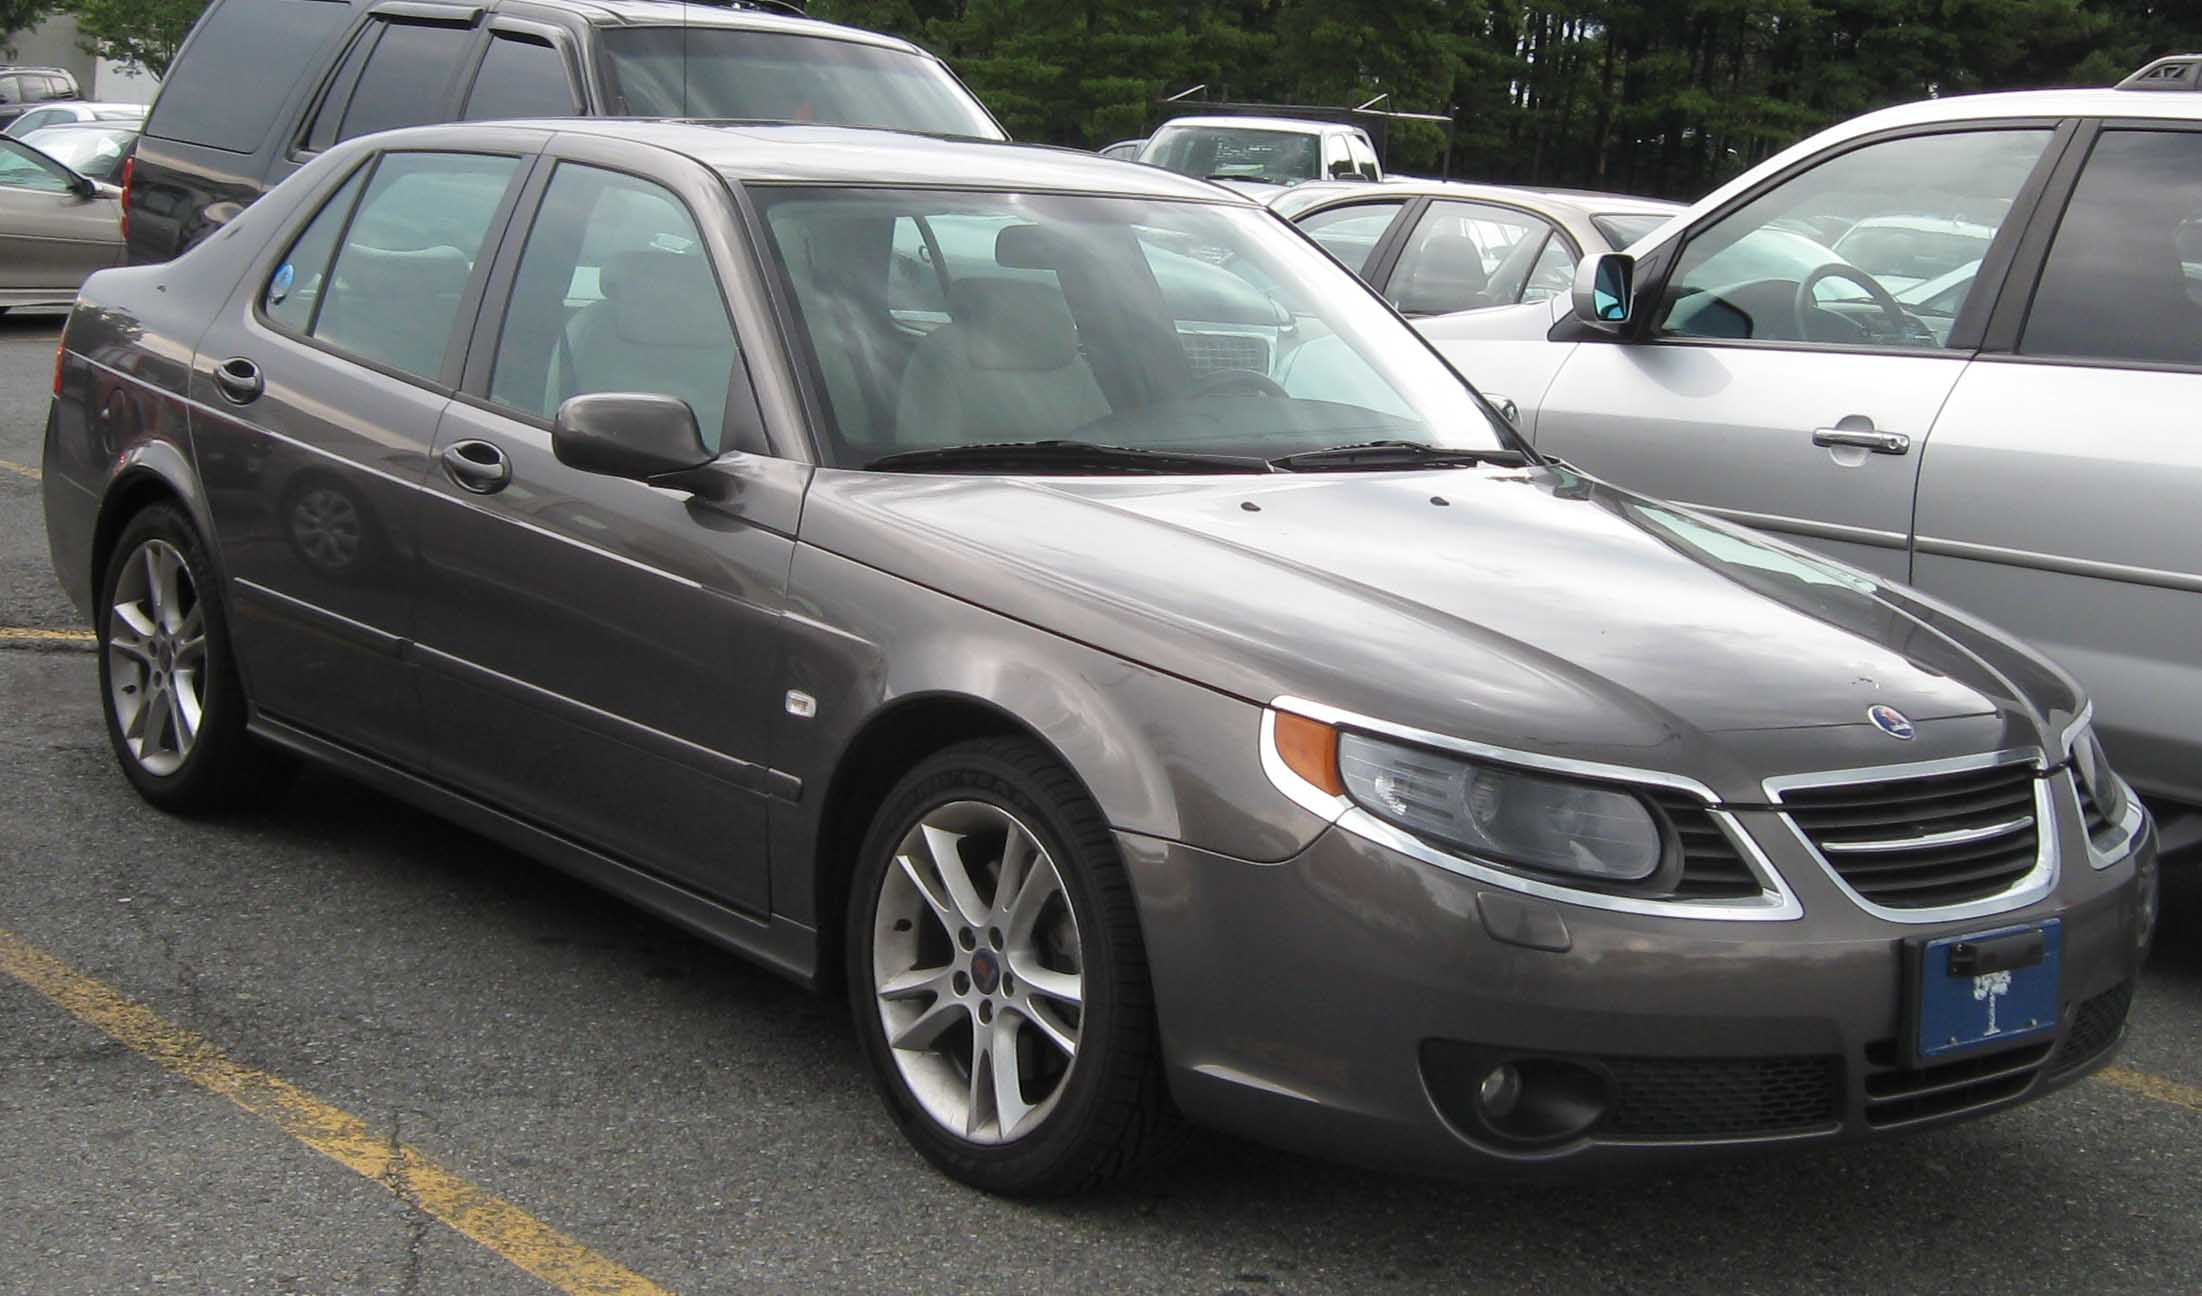 saab 9-5 wallpaper #11